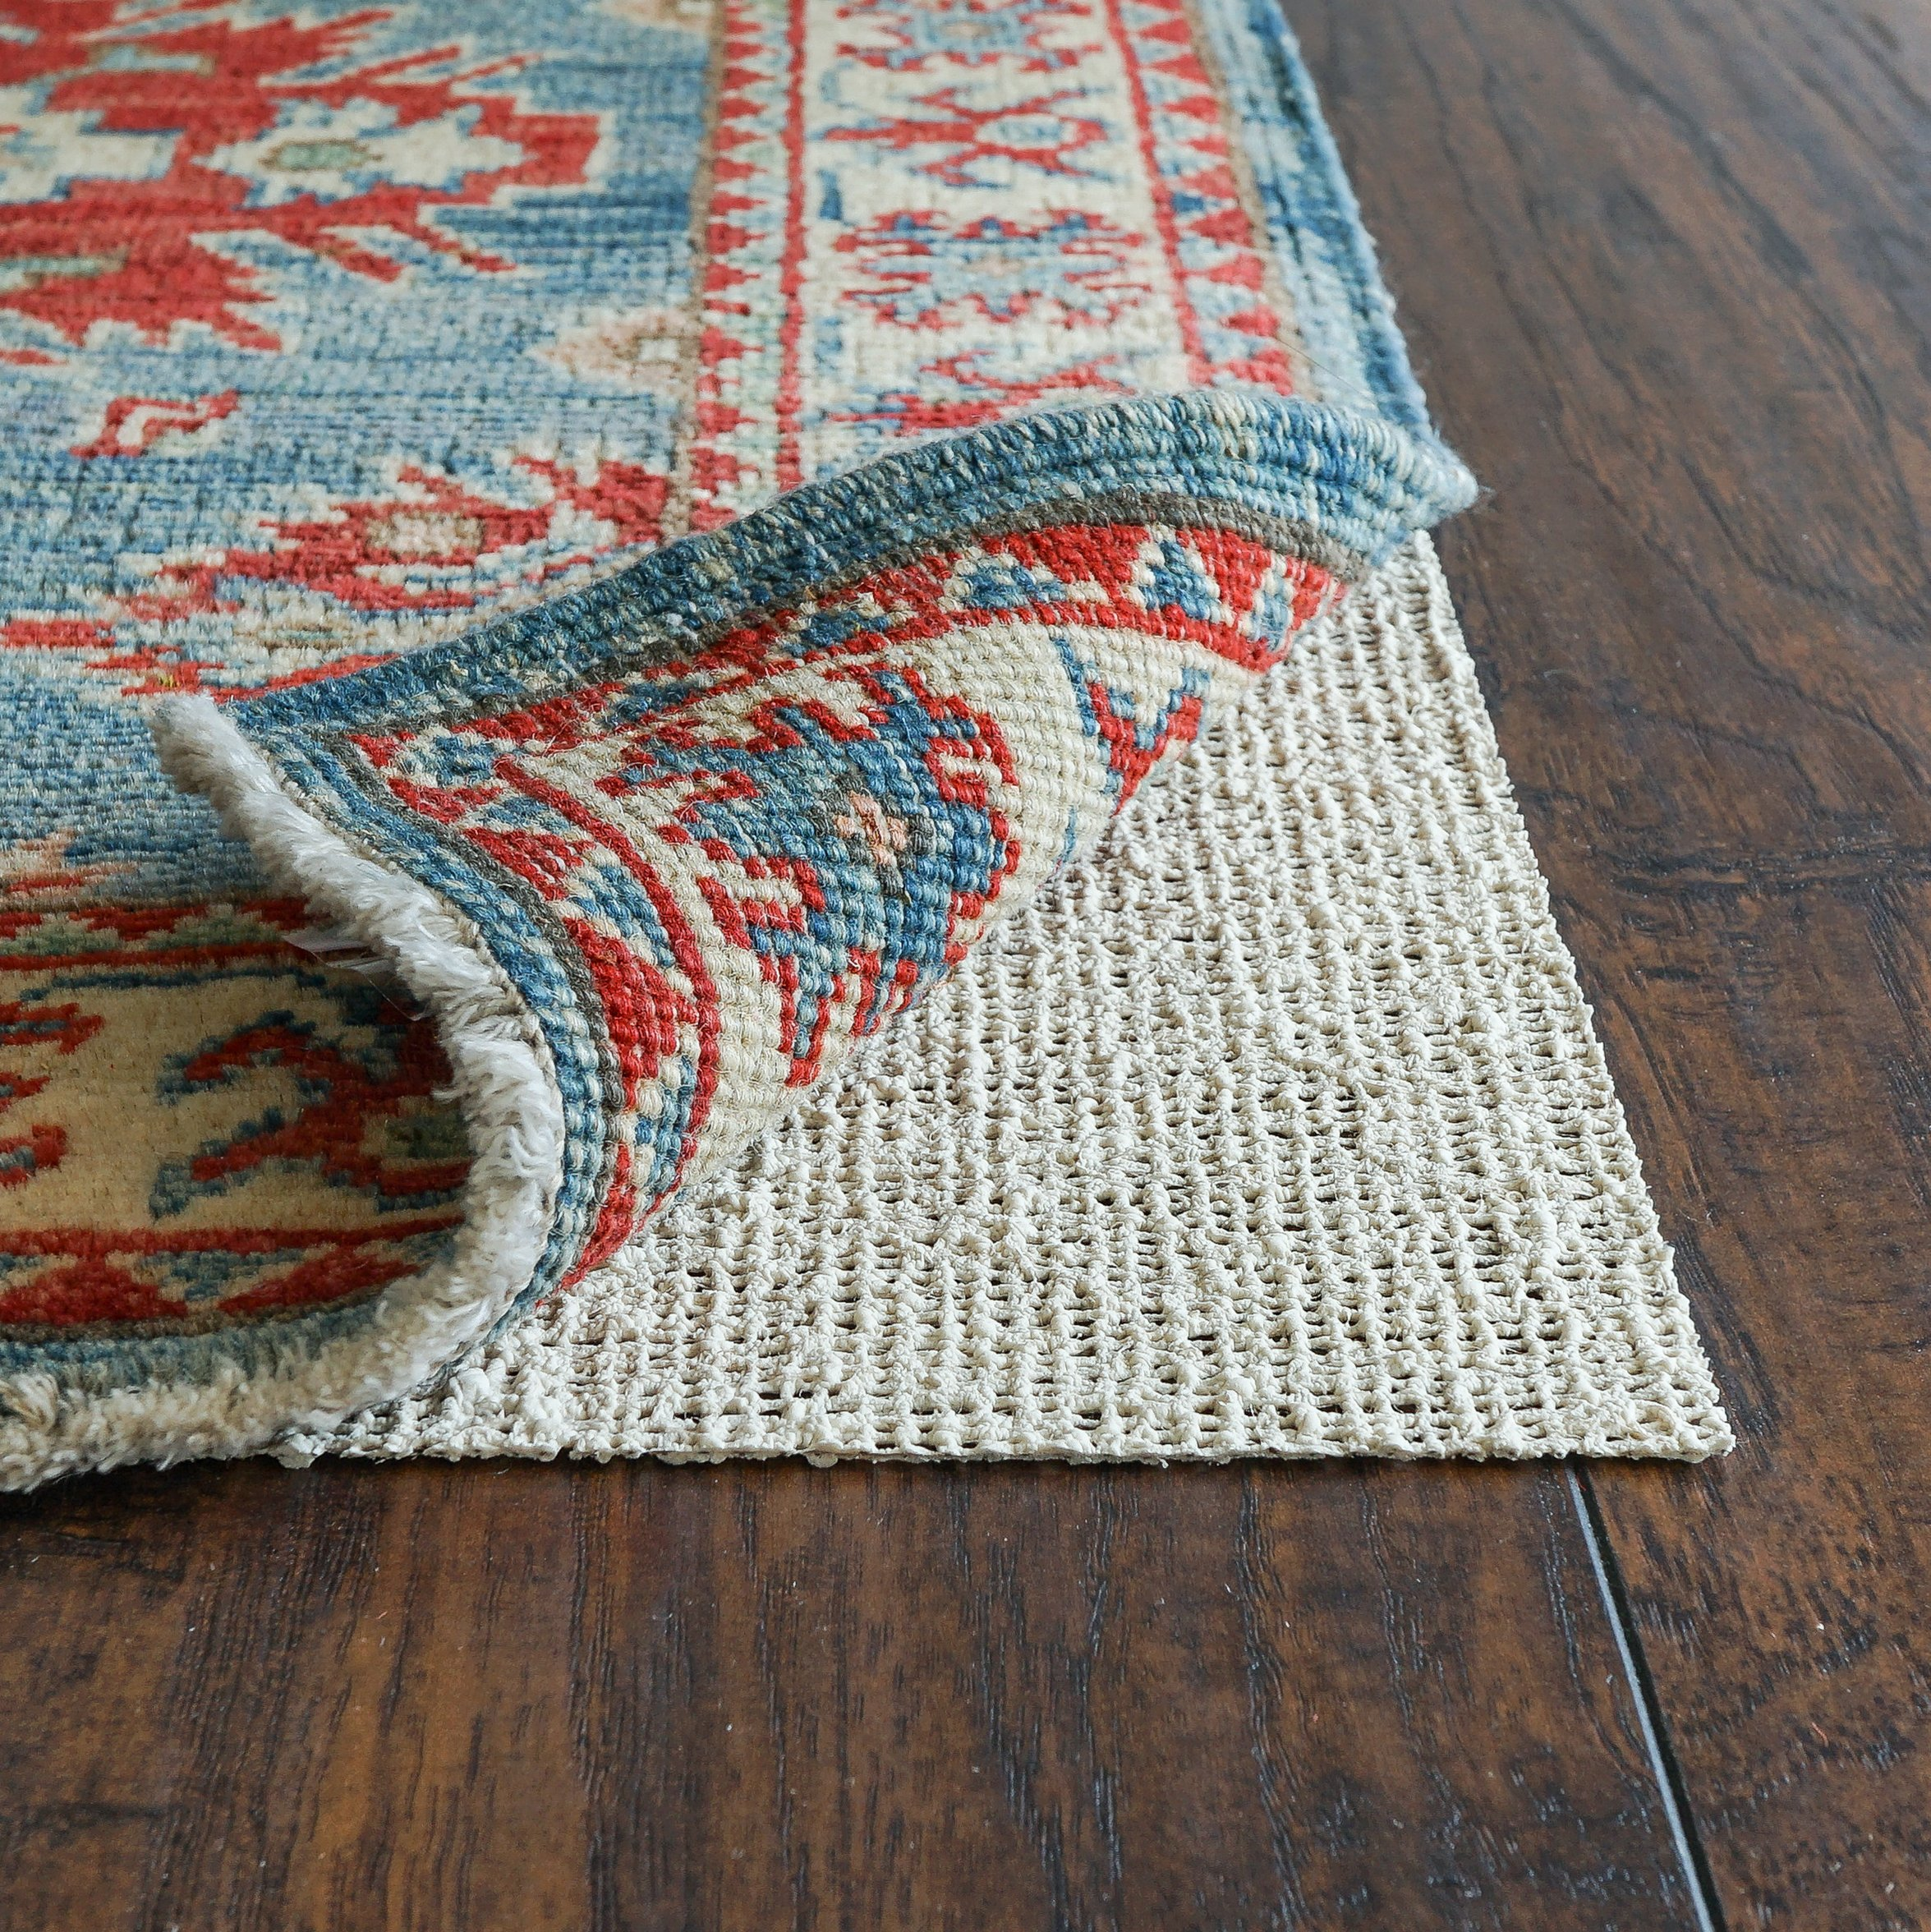 "RUGPADUSA, Nature's Grip, 2'x10', 1/16"" Thick, Rubber and Jute, Eco-Friendly Non-Slip Rug Pad, Safe for your Floors and your Family, Many Custom Sizes"